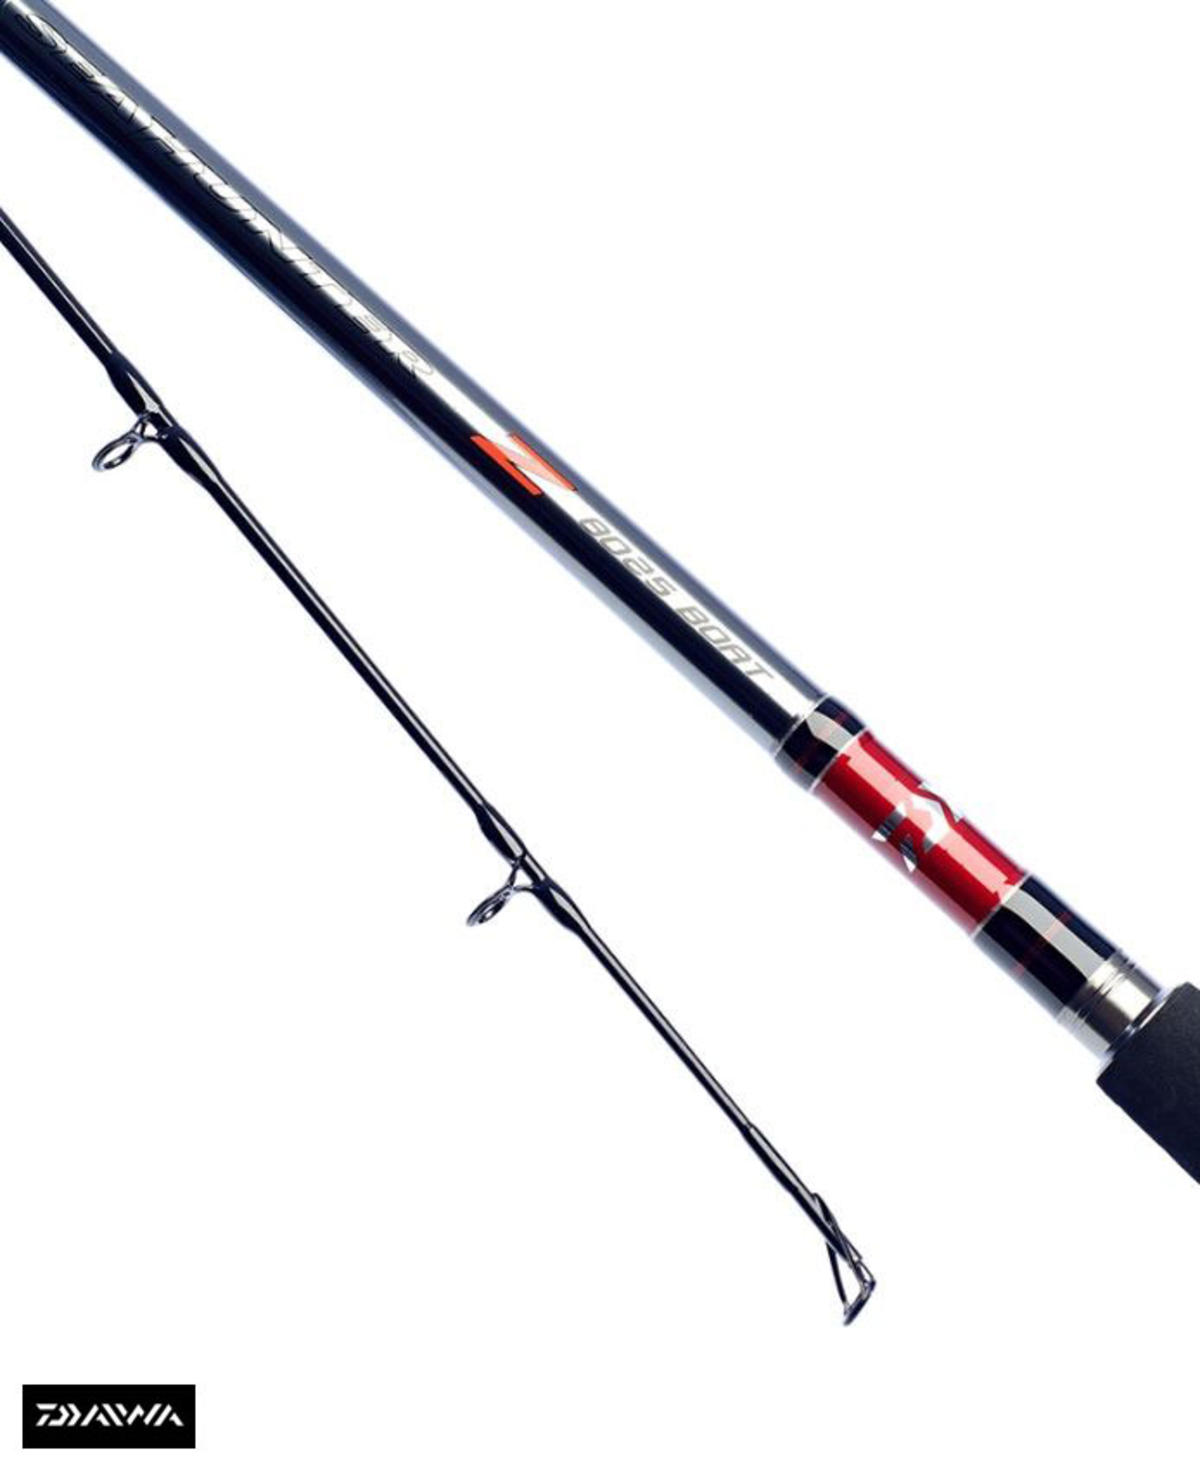 New Daiwa Seahunter Z Boat Sea Fishing Rods - All Models Available